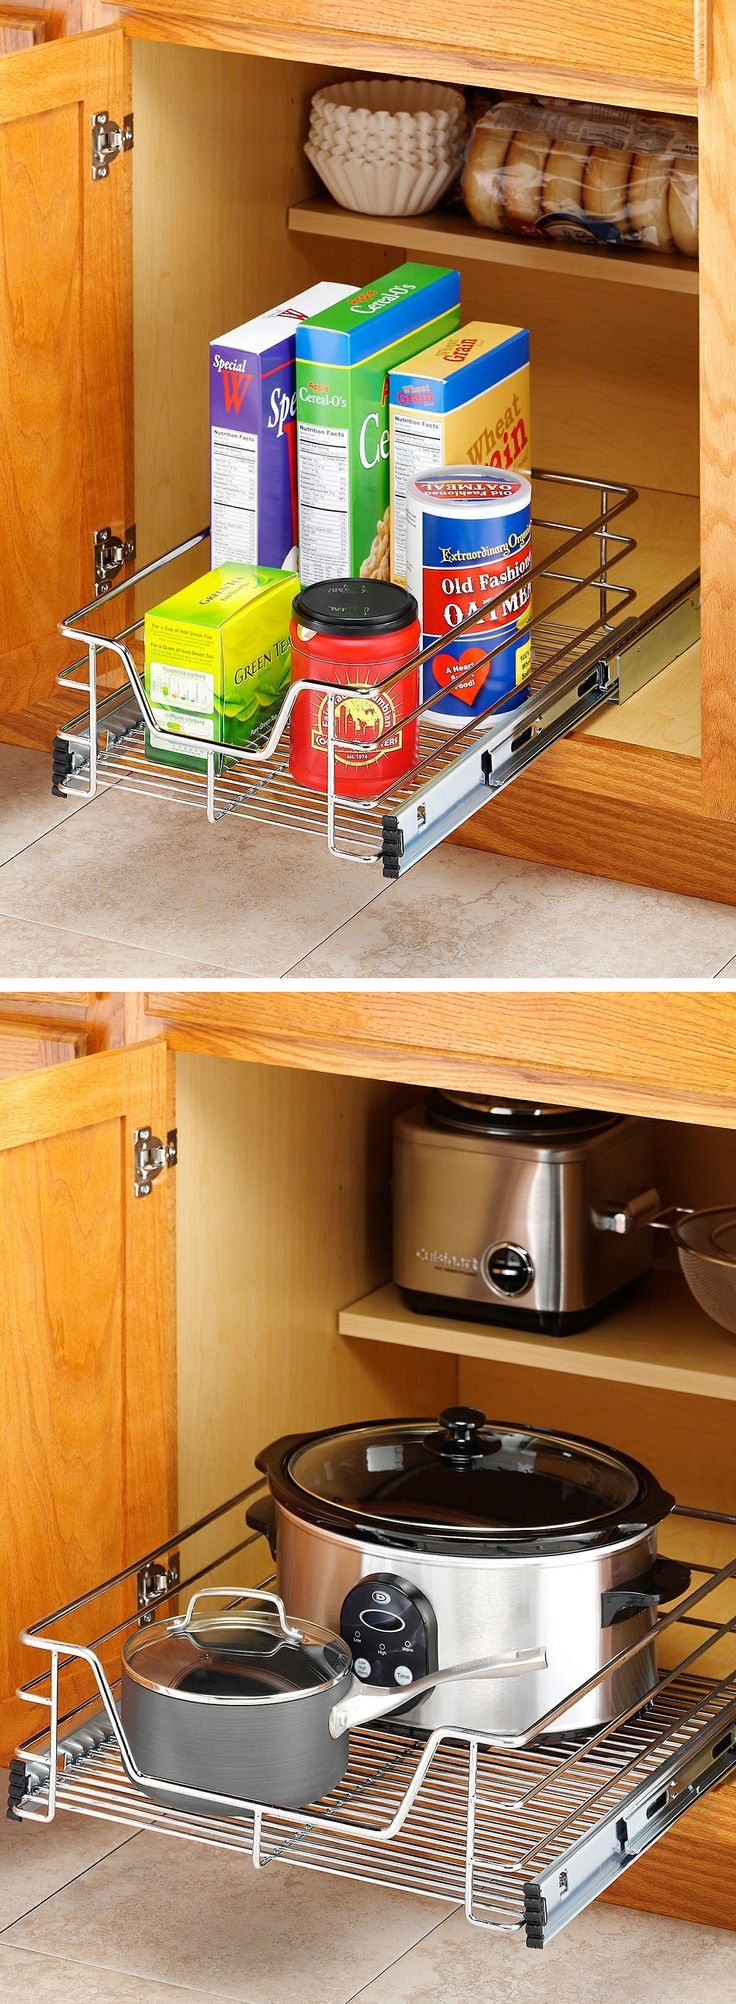 Kitchen cabinet tremendous corner base sink cabinet with half moon - Sliding Cabinet Organizers A Pull Out Drawer Briliant Idea For Easy Access